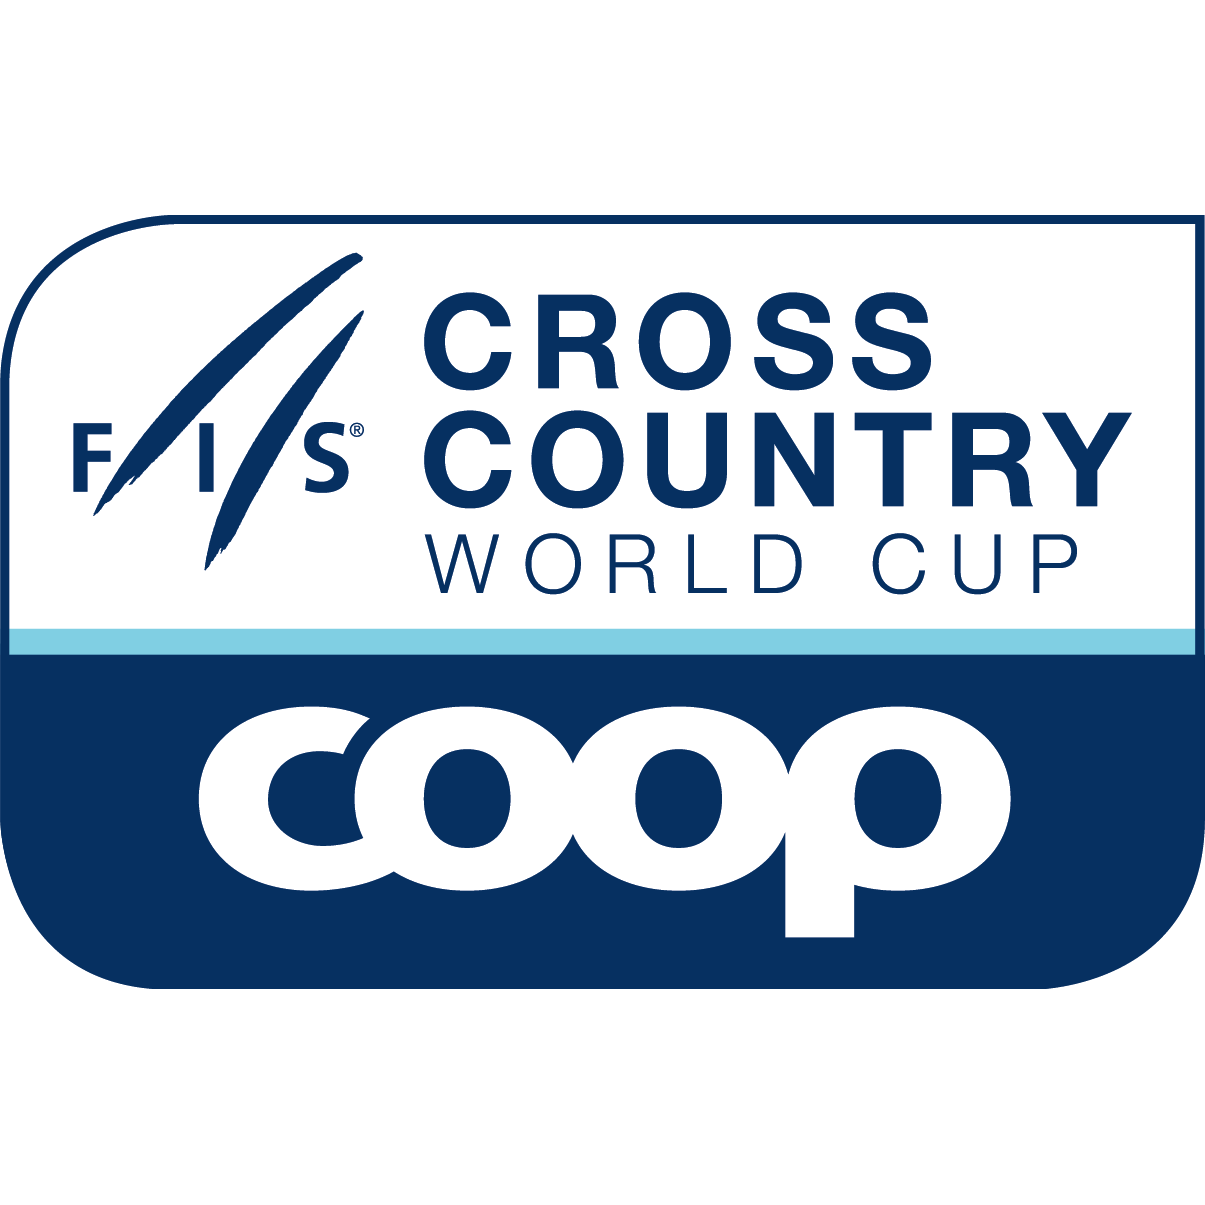 2019 FIS Cross Country World Cup - Tour de Ski